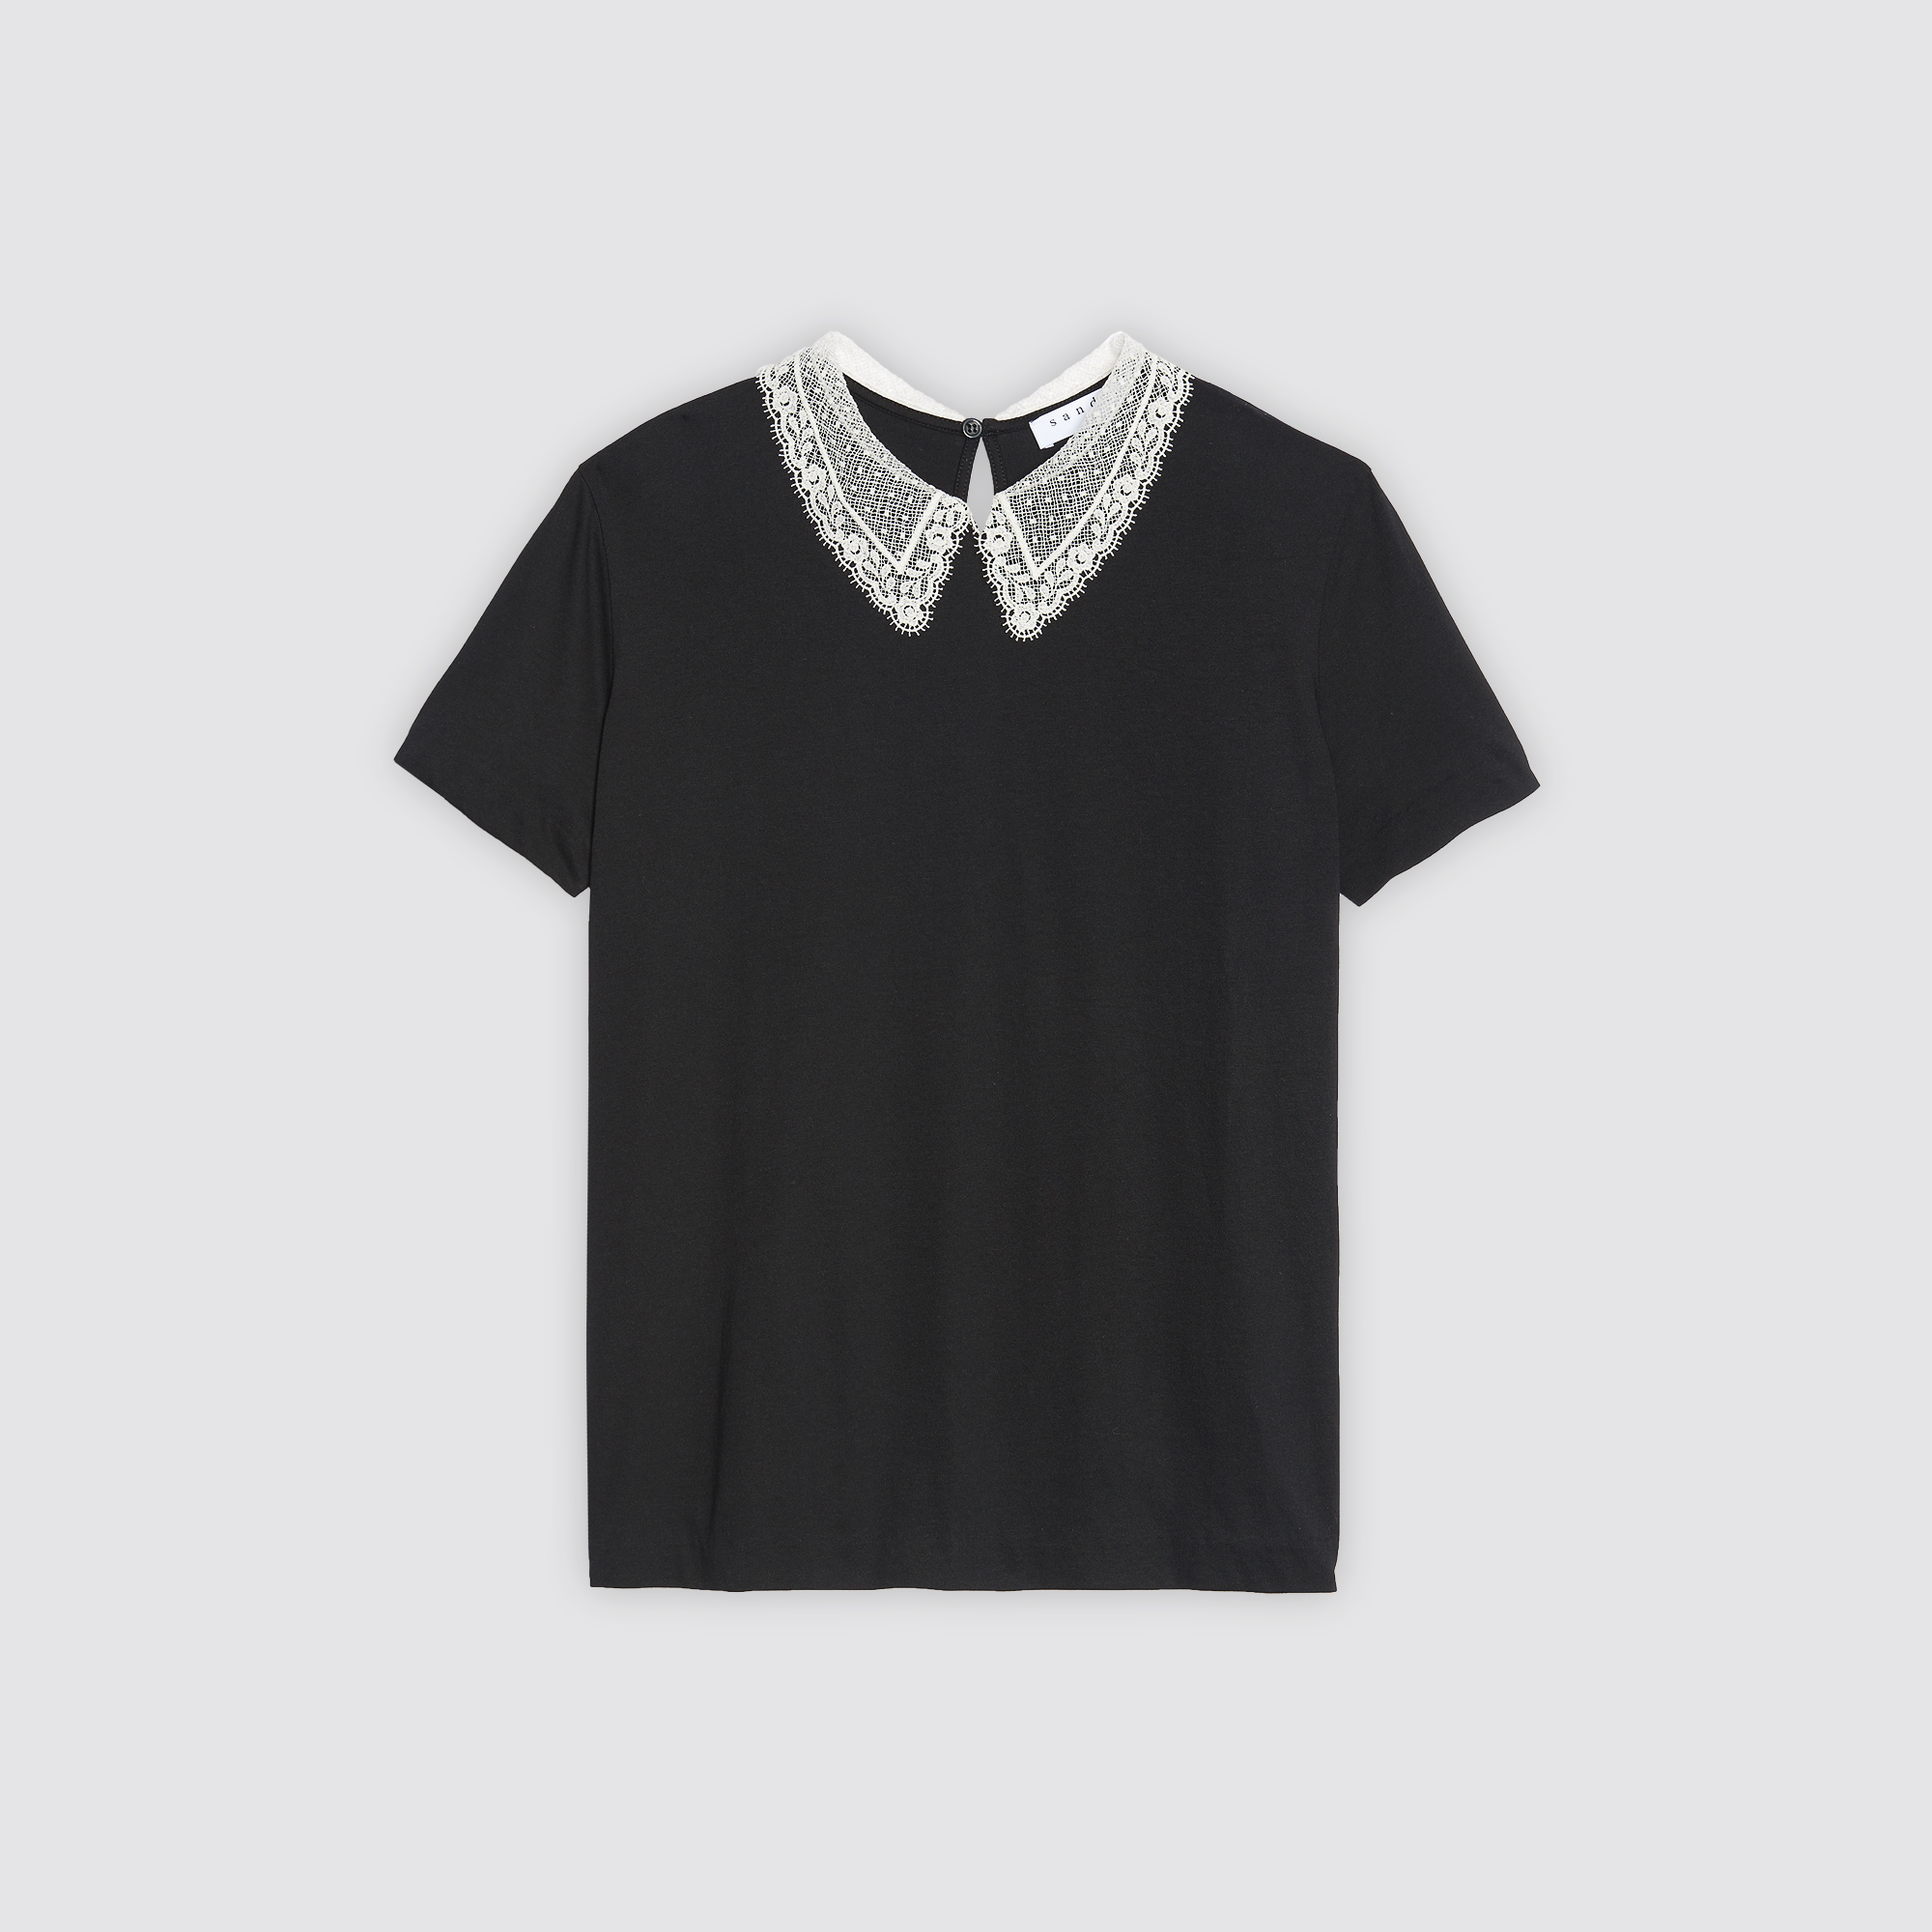 Black t shirt with white collar -  Cotton Blend T Shirt With Lace Collar T Shirts Sandro Paris